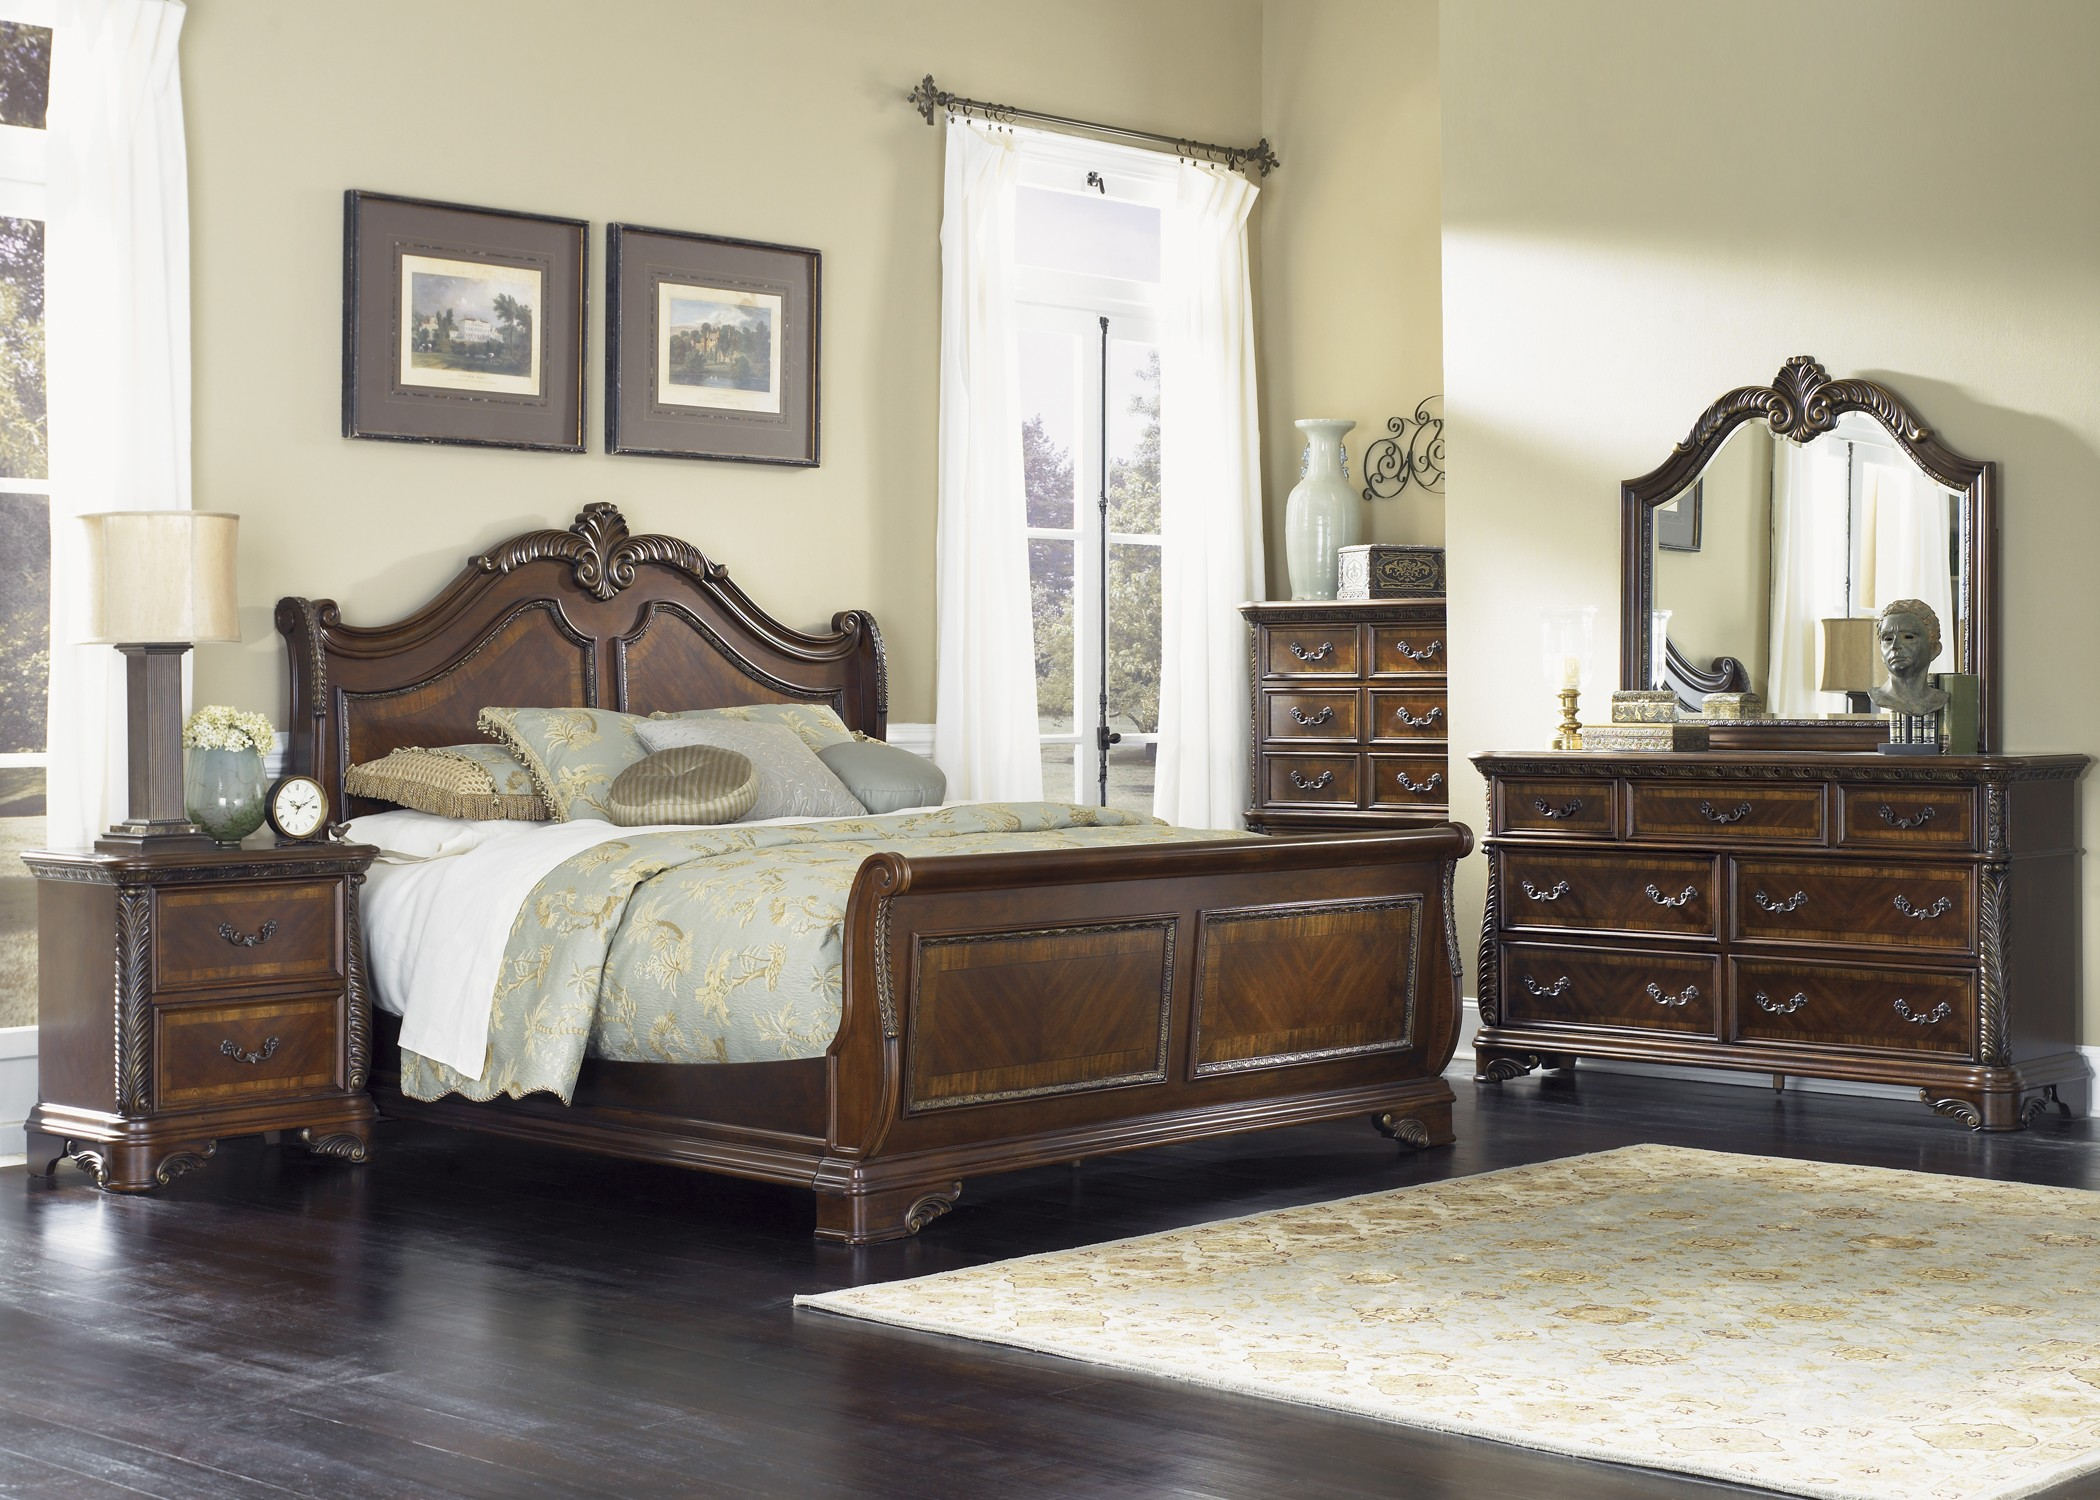 Sleigh Bedroom Set >> Highland Court Sleigh Bedroom Set from Liberty (620-BR-QSL)   Coleman Furniture